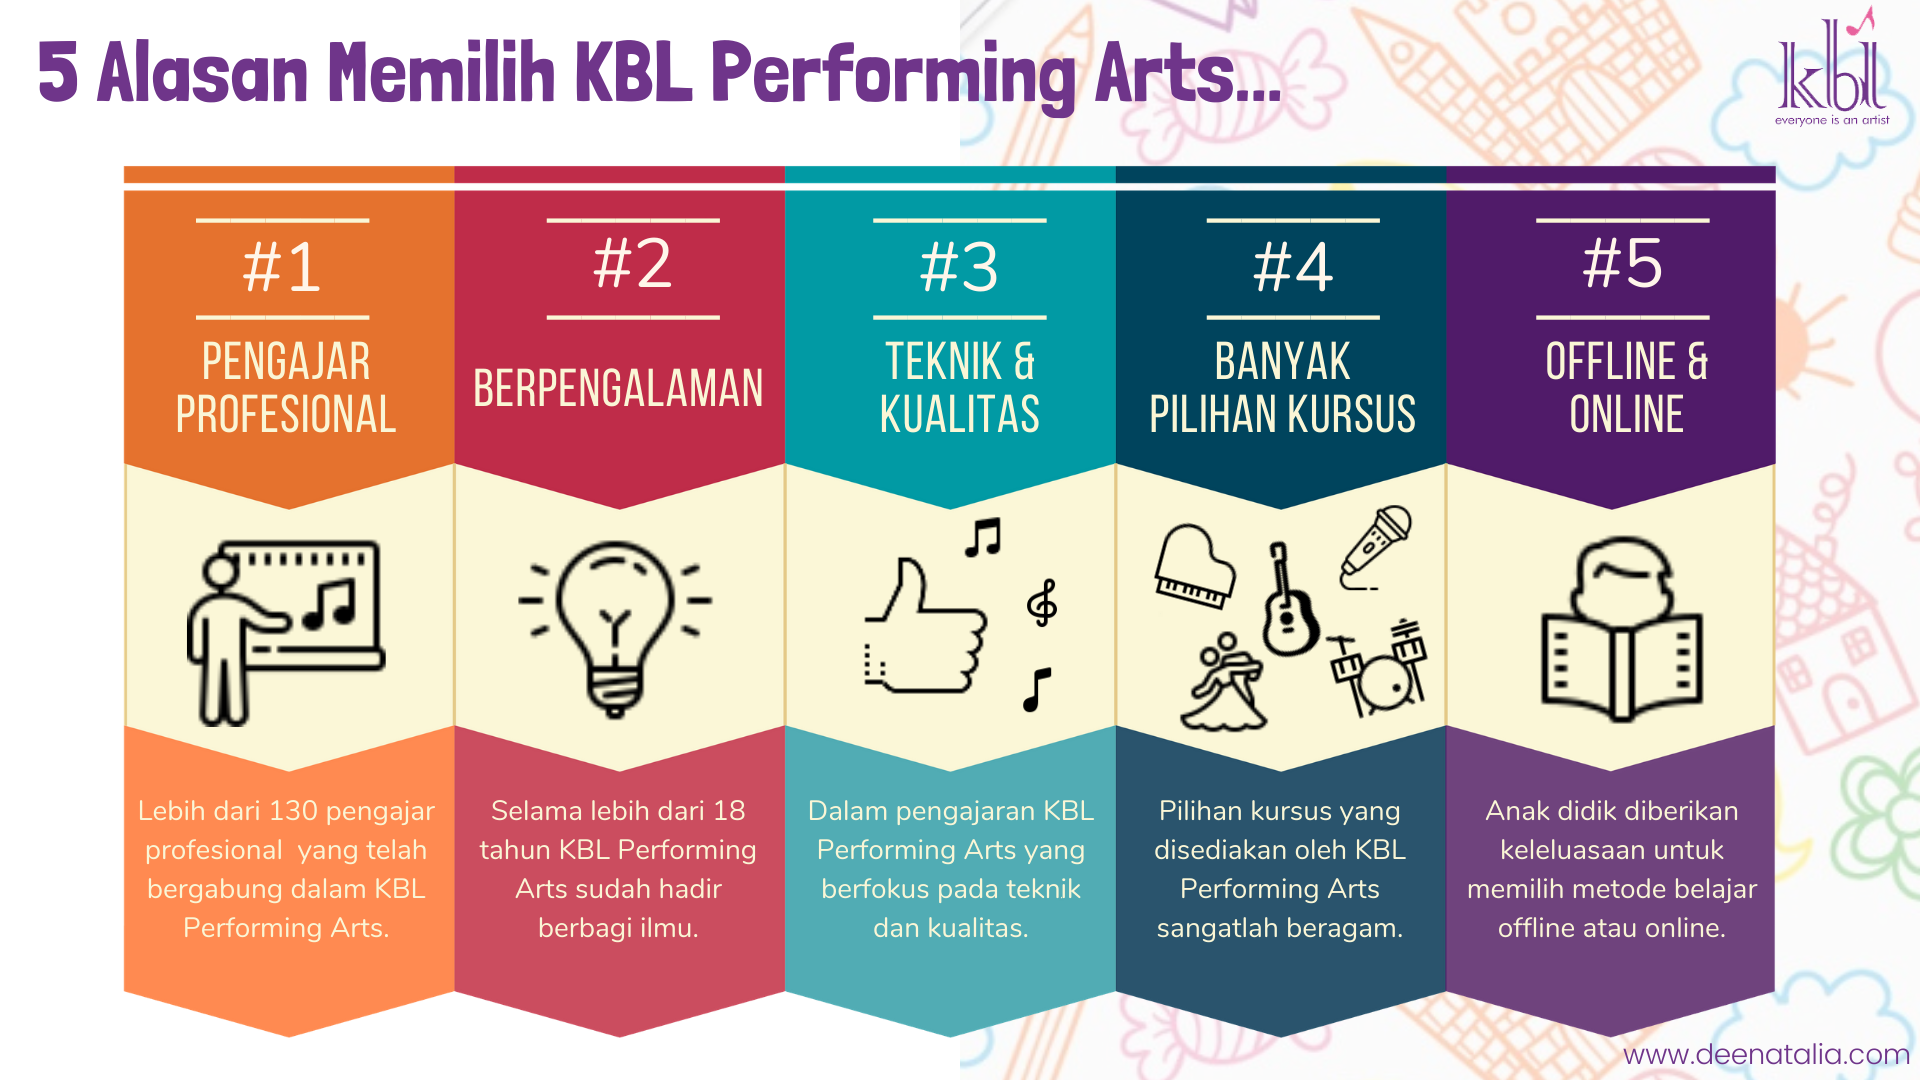 Keunggulan KBL Performing Arts